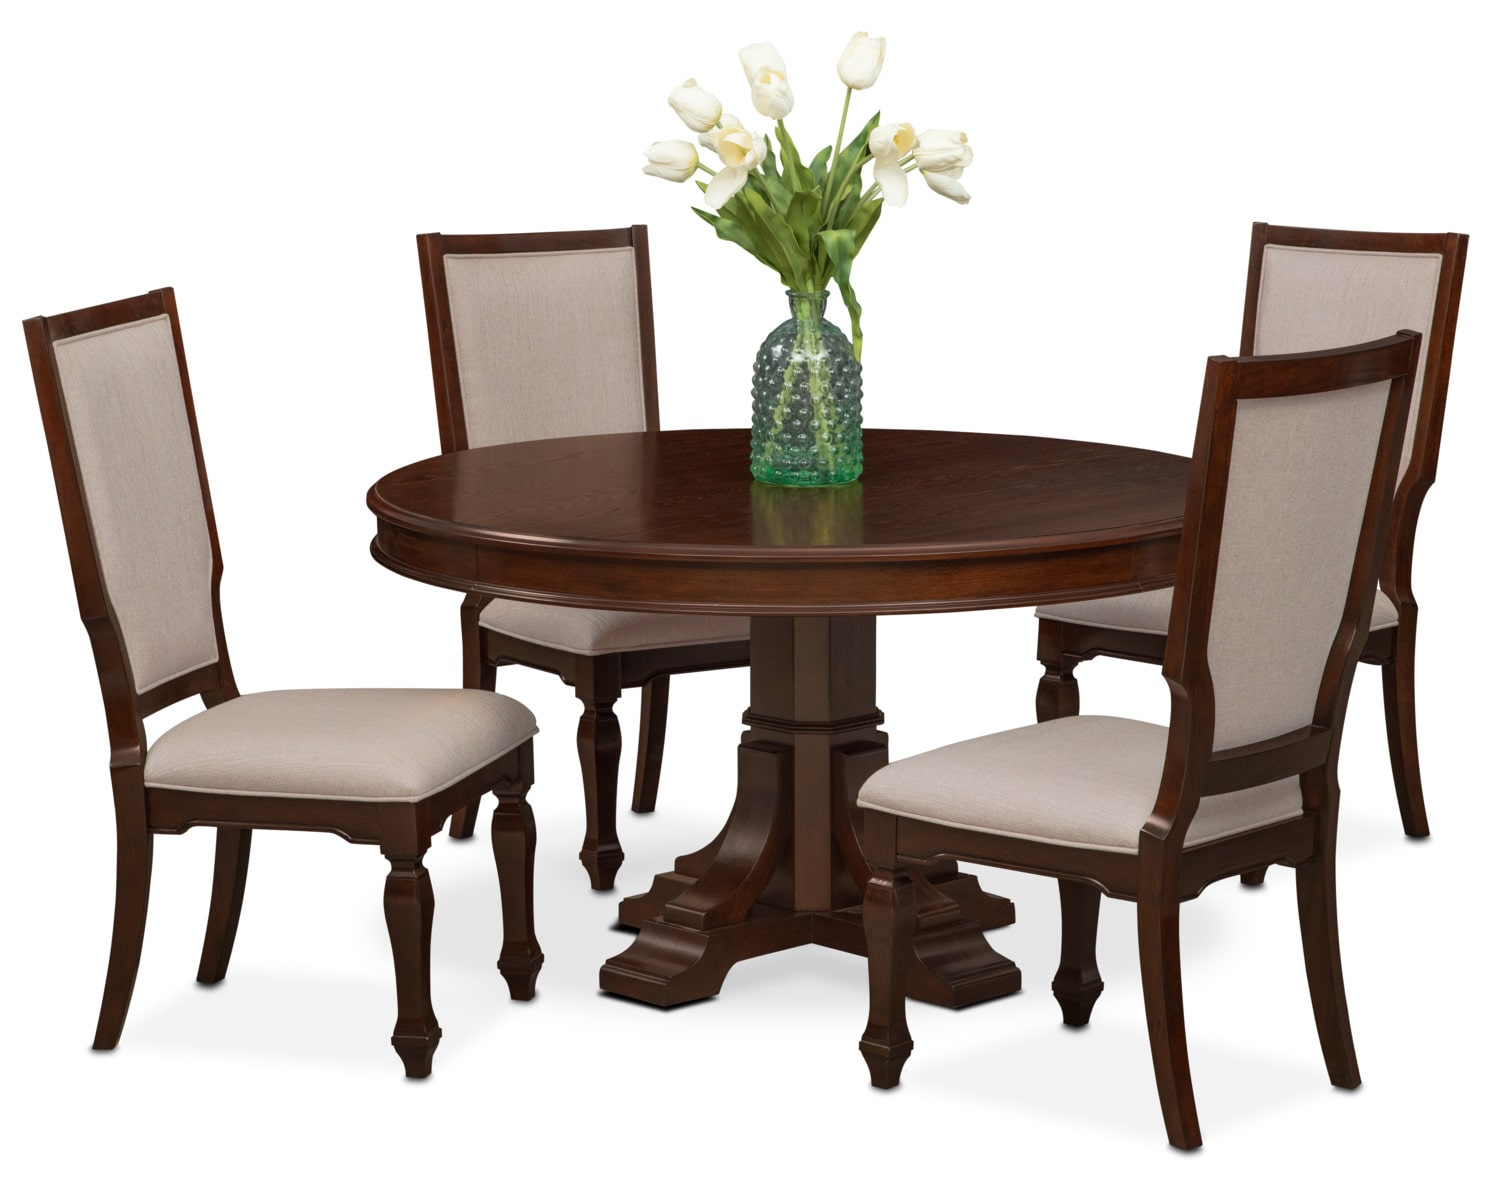 Vienna Round Dining Table and 4 Upholstered Side Chairs  : 500108 from www.americansignaturefurniture.com size 1500 x 1177 jpeg 191kB